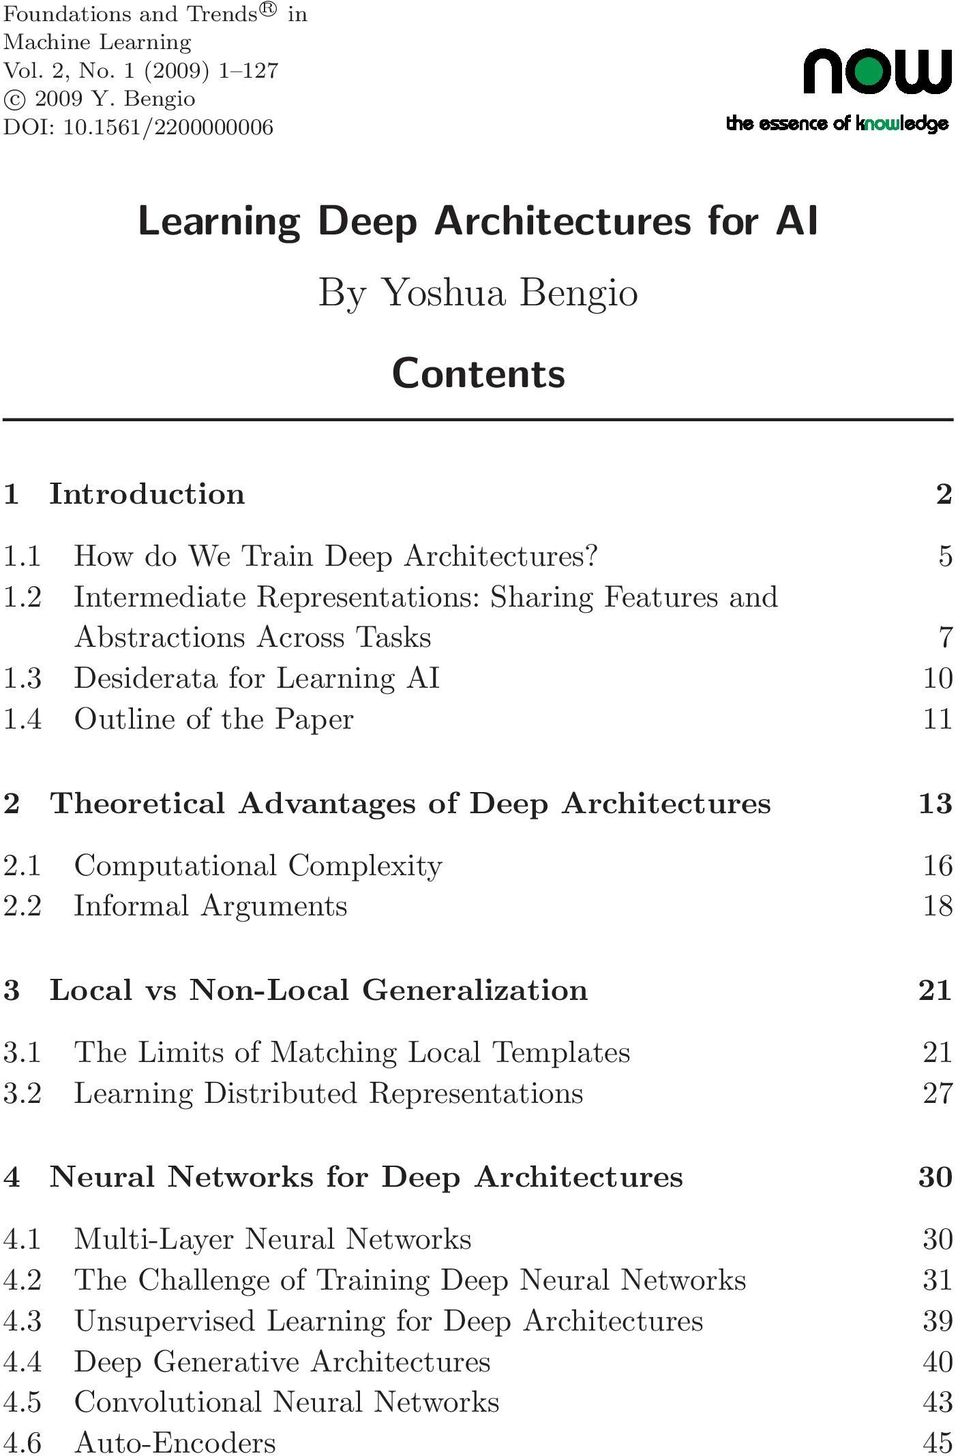 4 Outline of the Paper 11 2 Theoretical Advantages of Deep Architectures 13 2.1 Computational Complexity 16 2.2 Informal Arguments 18 3 Local vs Non-Local Generalization 21 3.